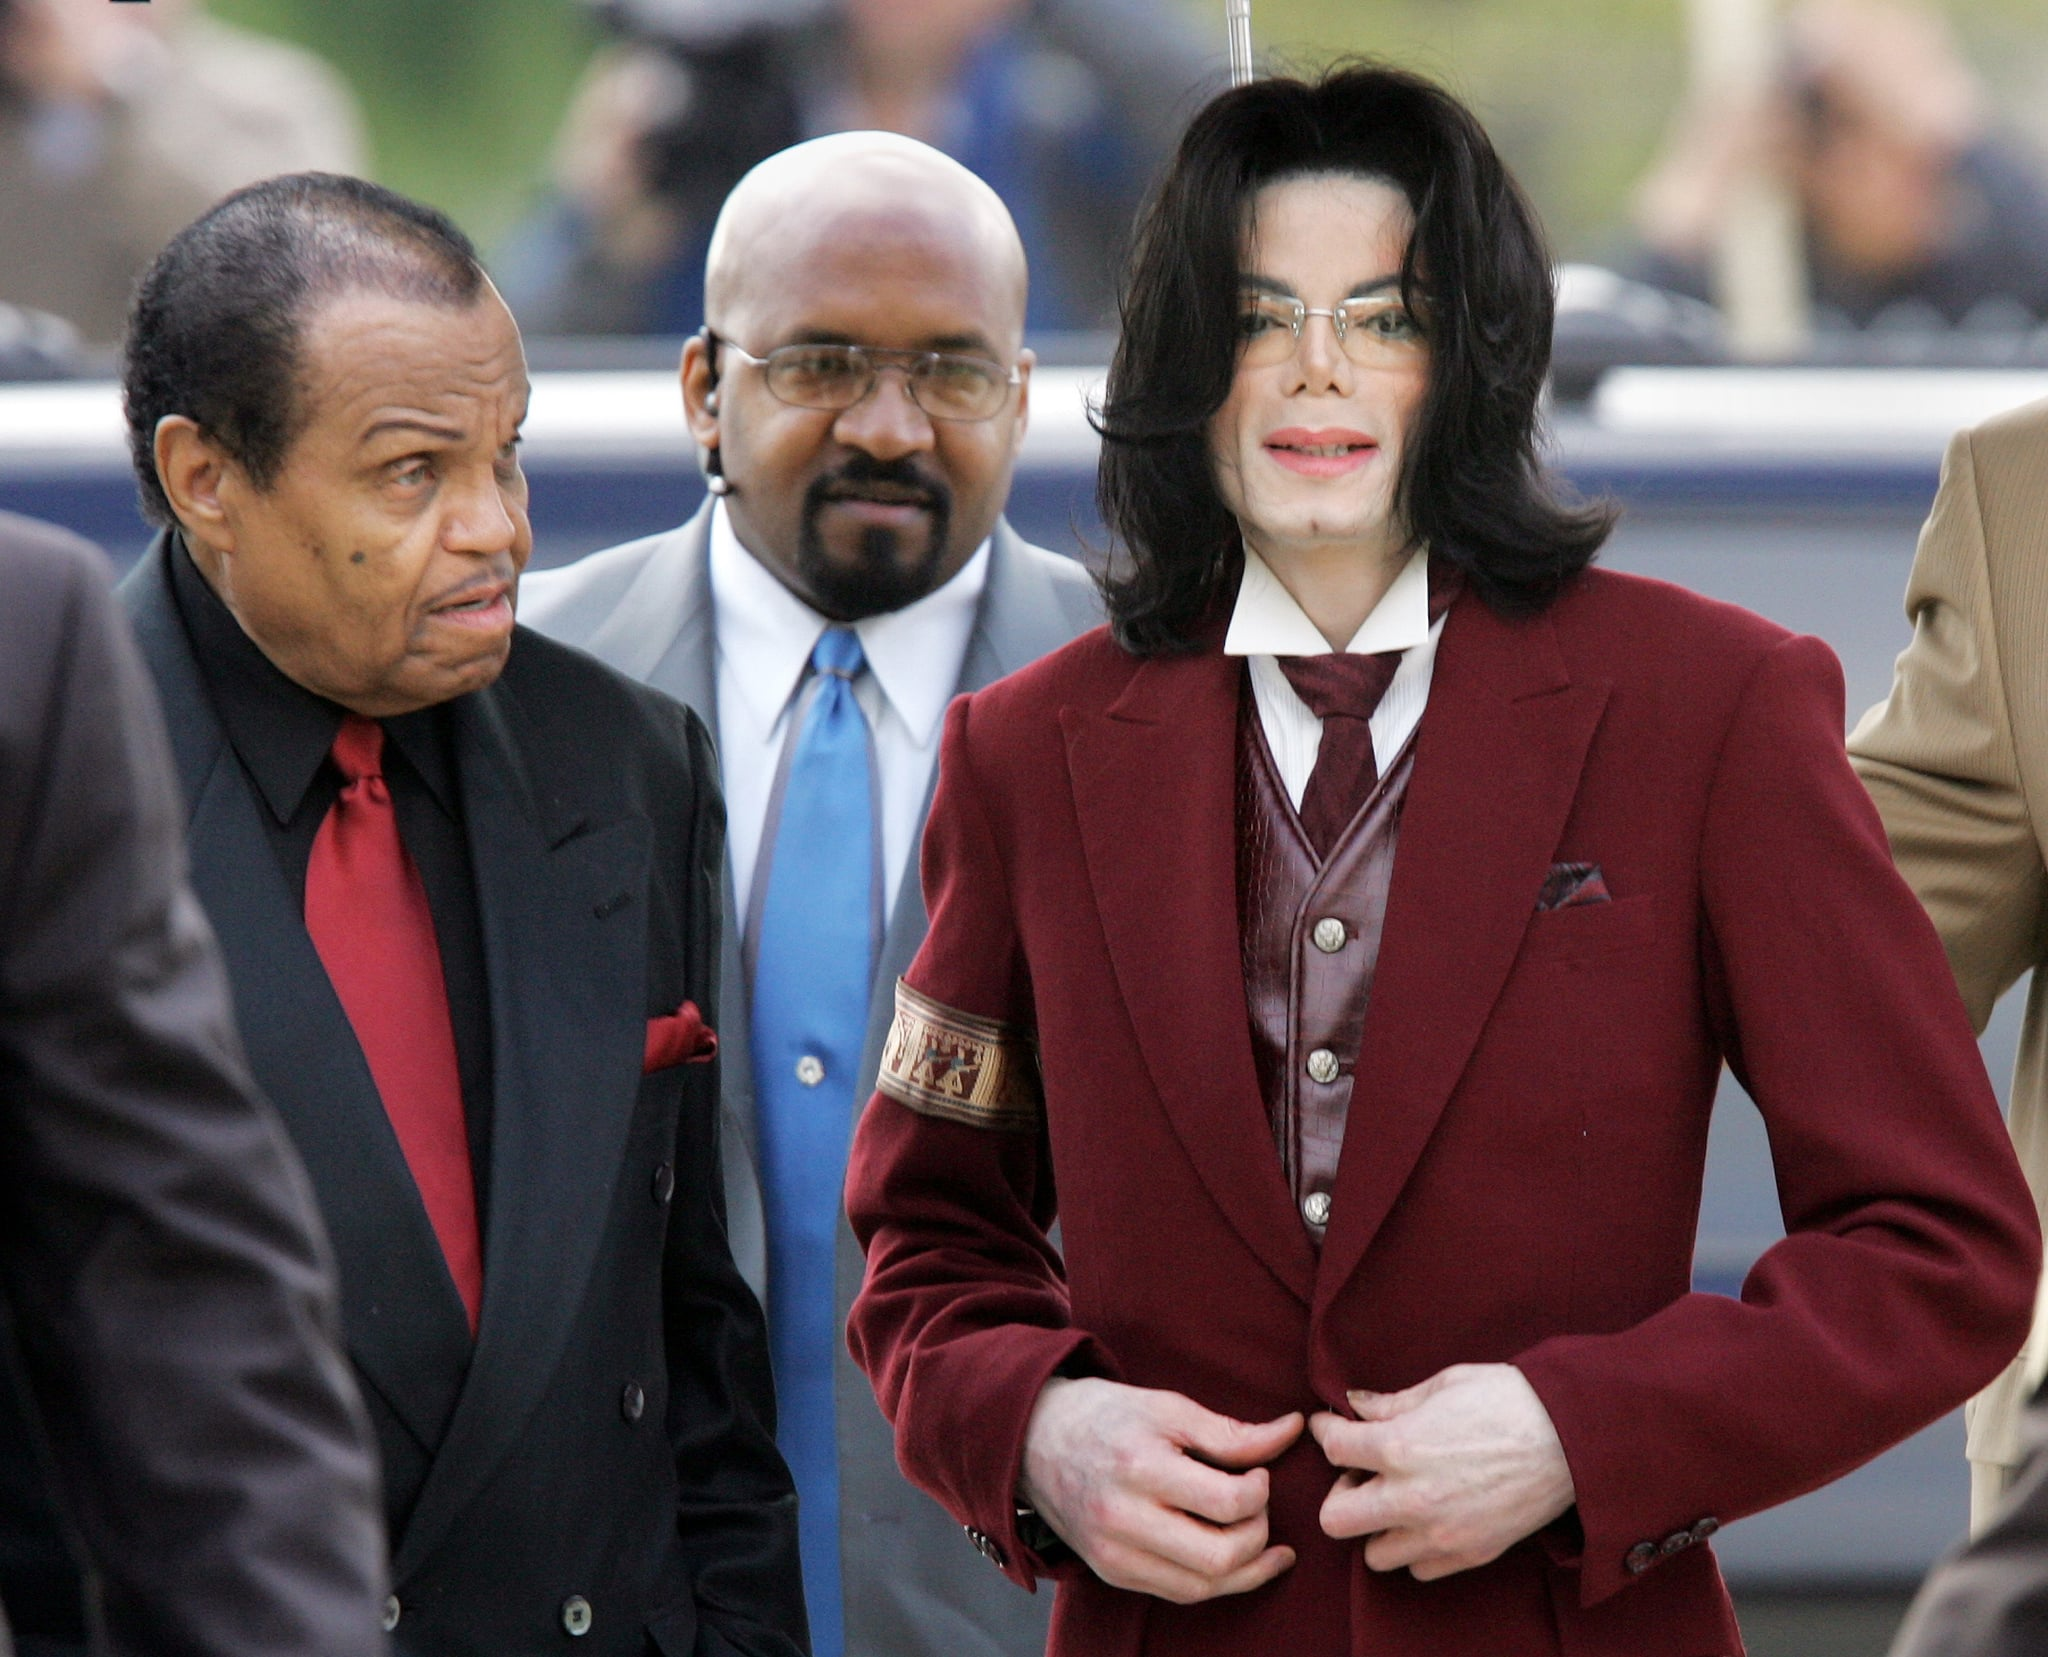 Michael Jackson (R) and his father Joe Jackson (L) arrive with a security guard (C) at the Santa Barbara County courthouse April 27, 2005, in Santa Maria, California for Michael Jackson's child molestation trial.   (Pool photo by Justin Sullivan) (Photo by Pool Photographer/WireImage)